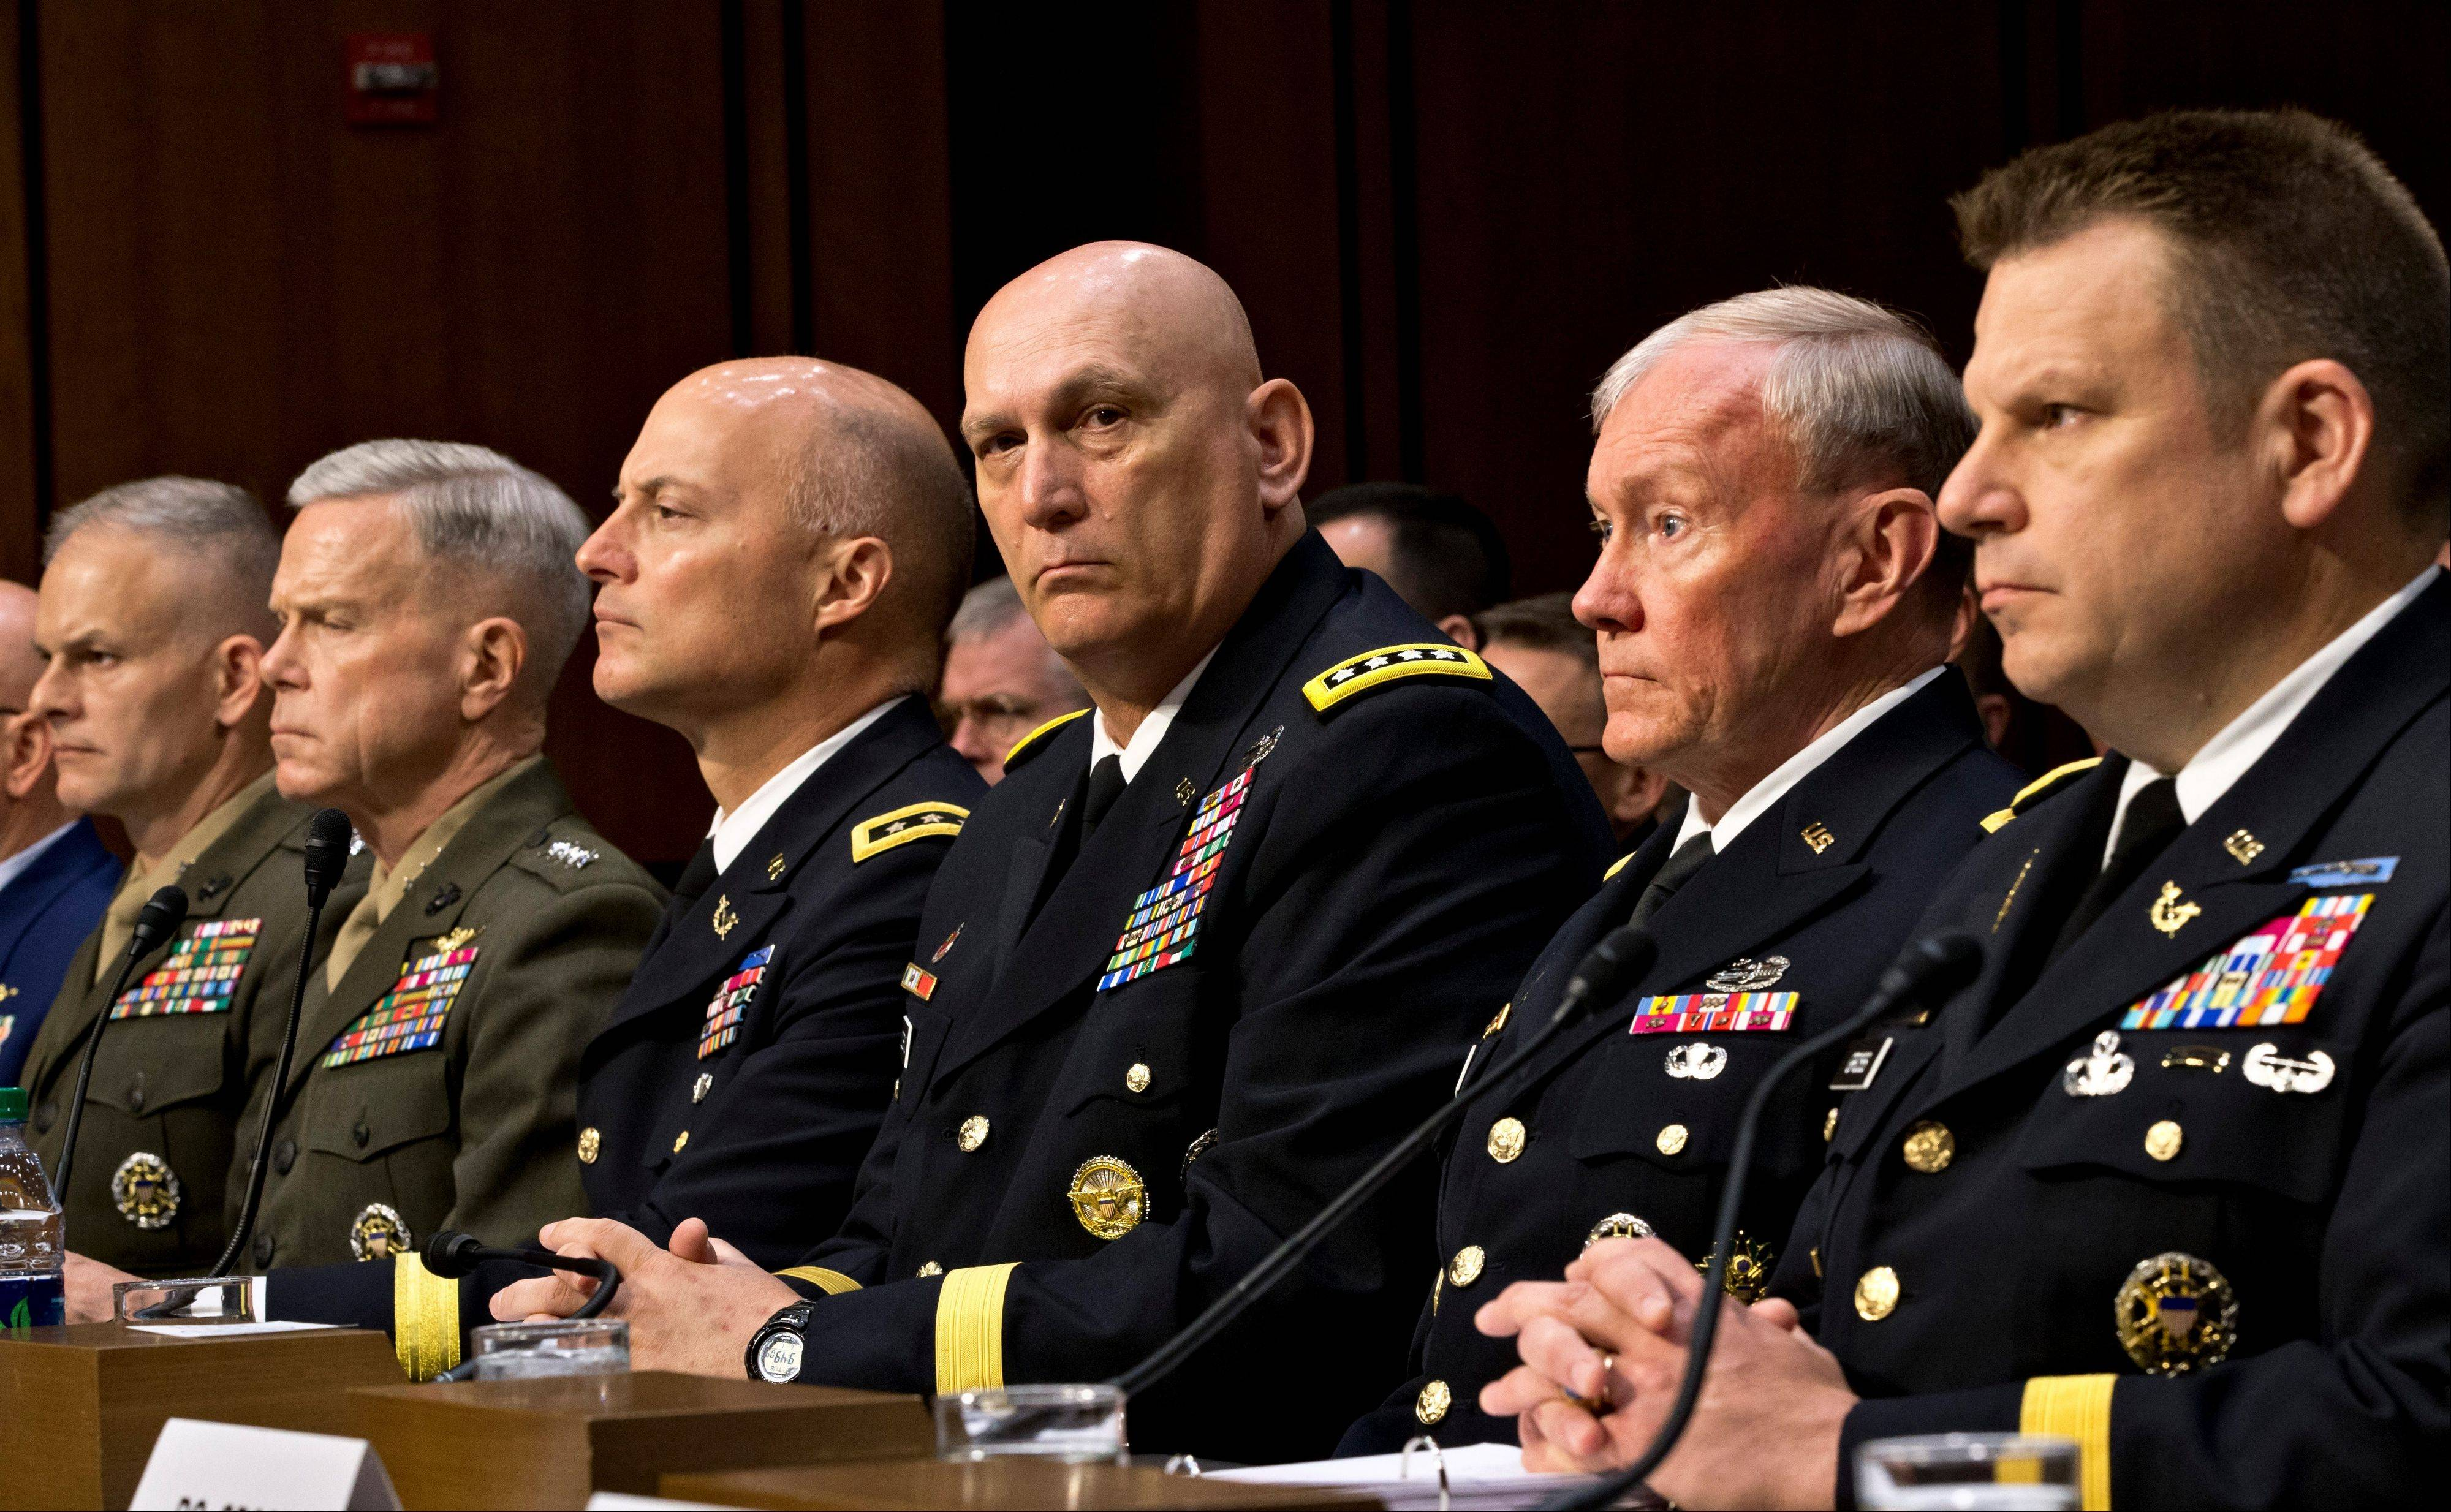 Military leaders, from right, legal counsel to the Chairman of the Joint Chiefs of Staff Brig. Gen. Richard C. Gross, Joint Chiefs Chairman Gen. Martin Dempsey, Army Chief of Staff Gen. Ray Odierno, Judge Advocate General of the Army Lt. Gen. Dana K. Chipman, Commandant of the Marine Corps Gen. James F. Amos, and Staff Judge Advocate to the Marine Corps Commandant Maj. Gen. Vaughn A. Ary testify at a Senate hearing on June 4.